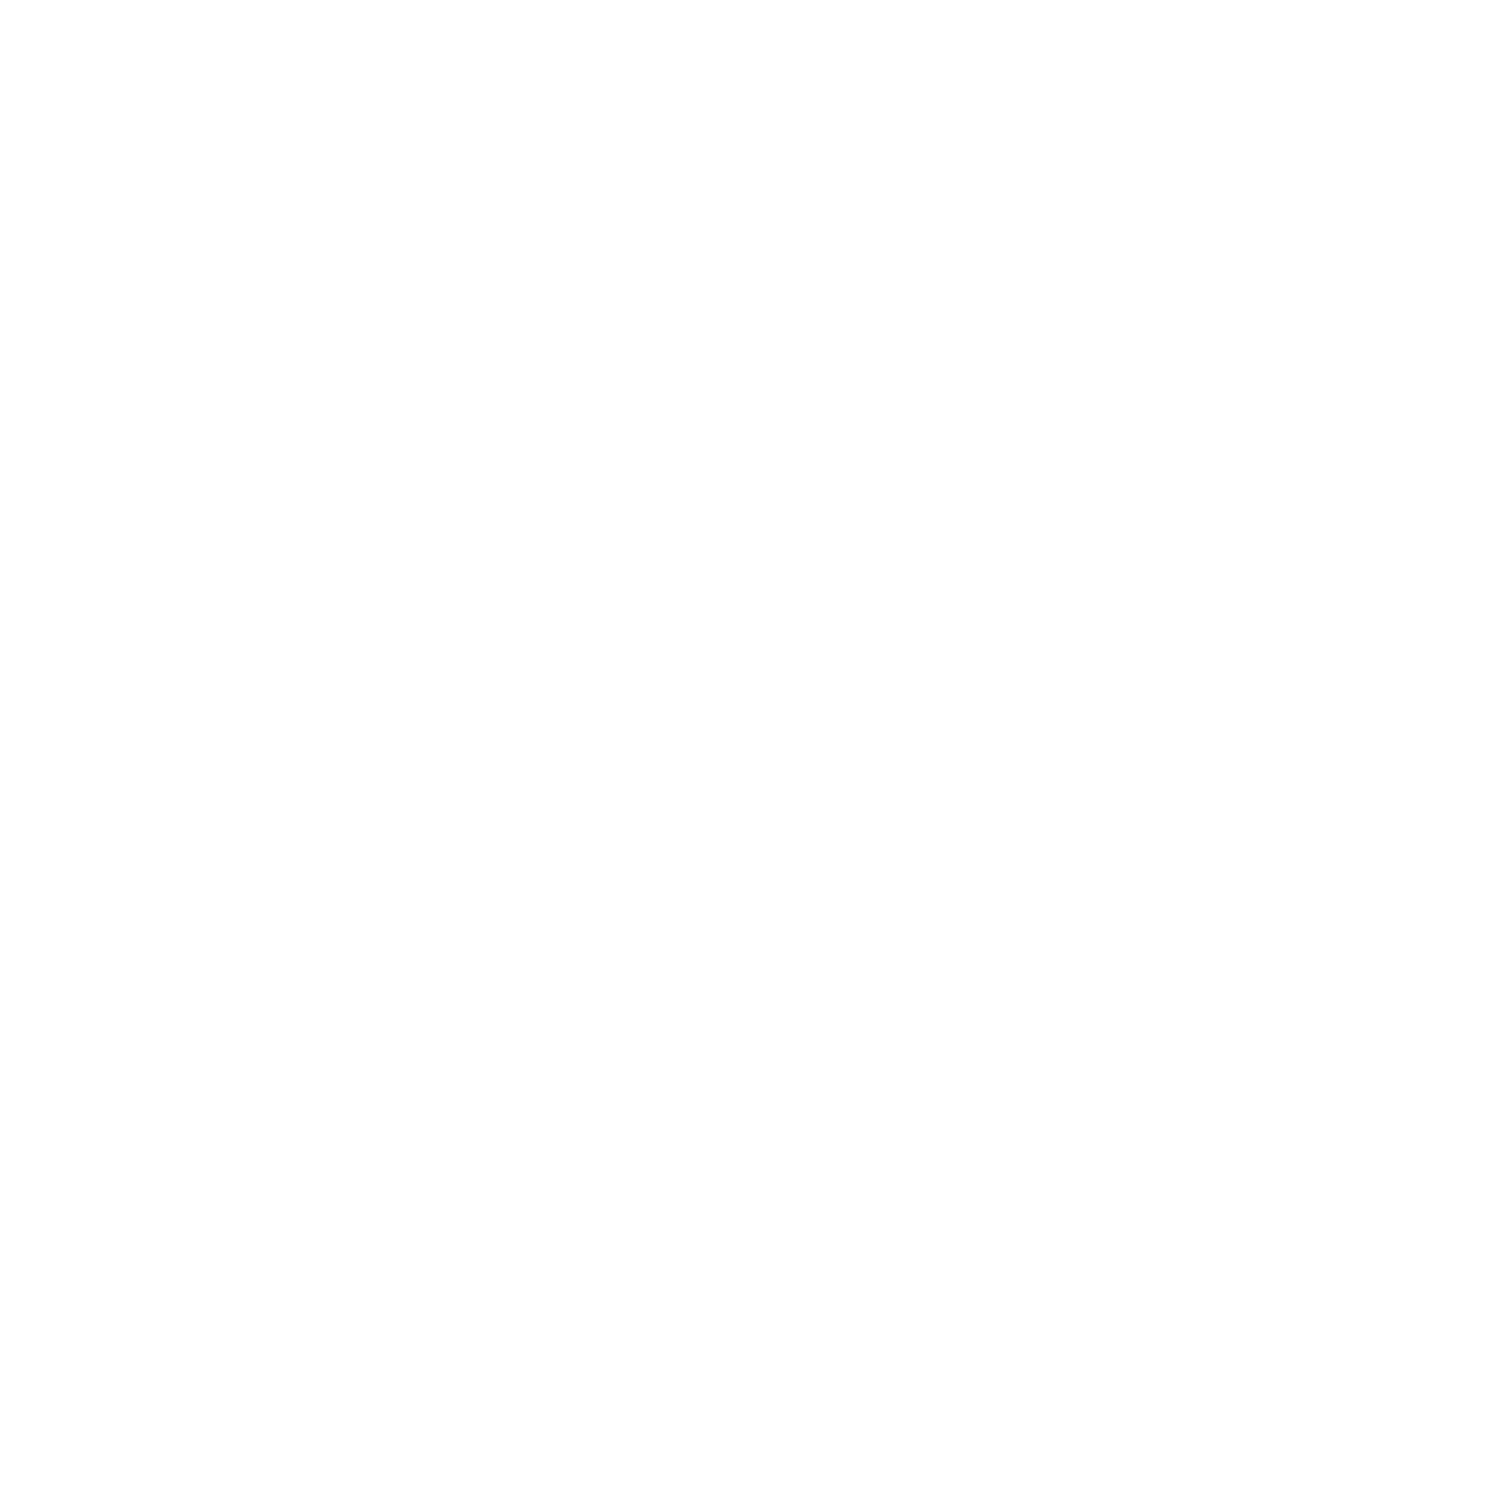 Our Leadership — Hope Church Eastern Queens // Bayside, NY